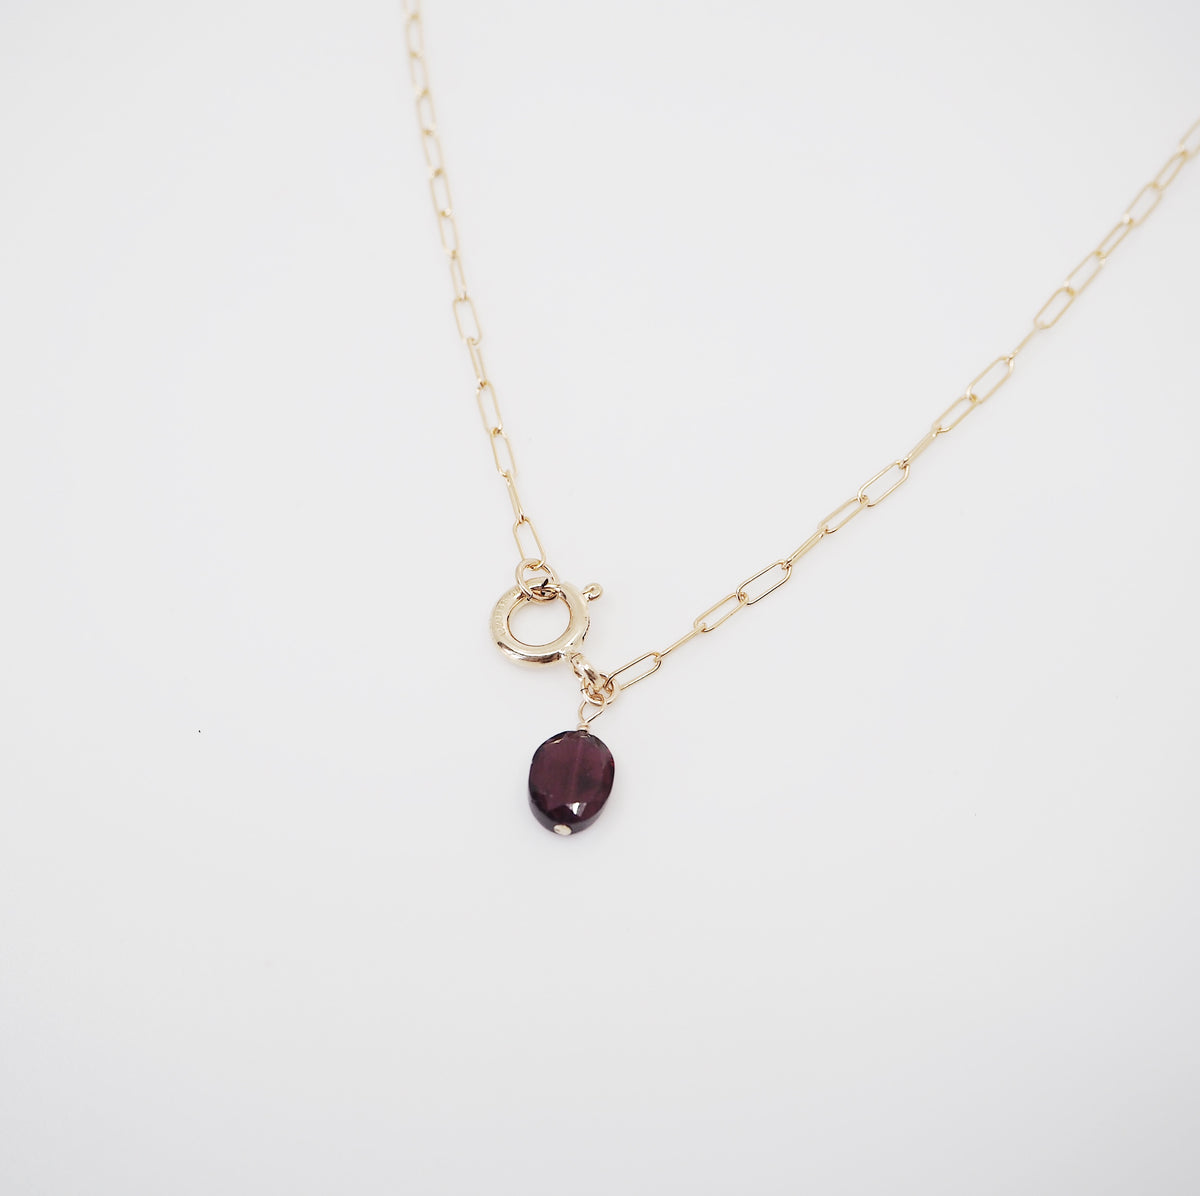 Garnet Necklace with Statement Clasp